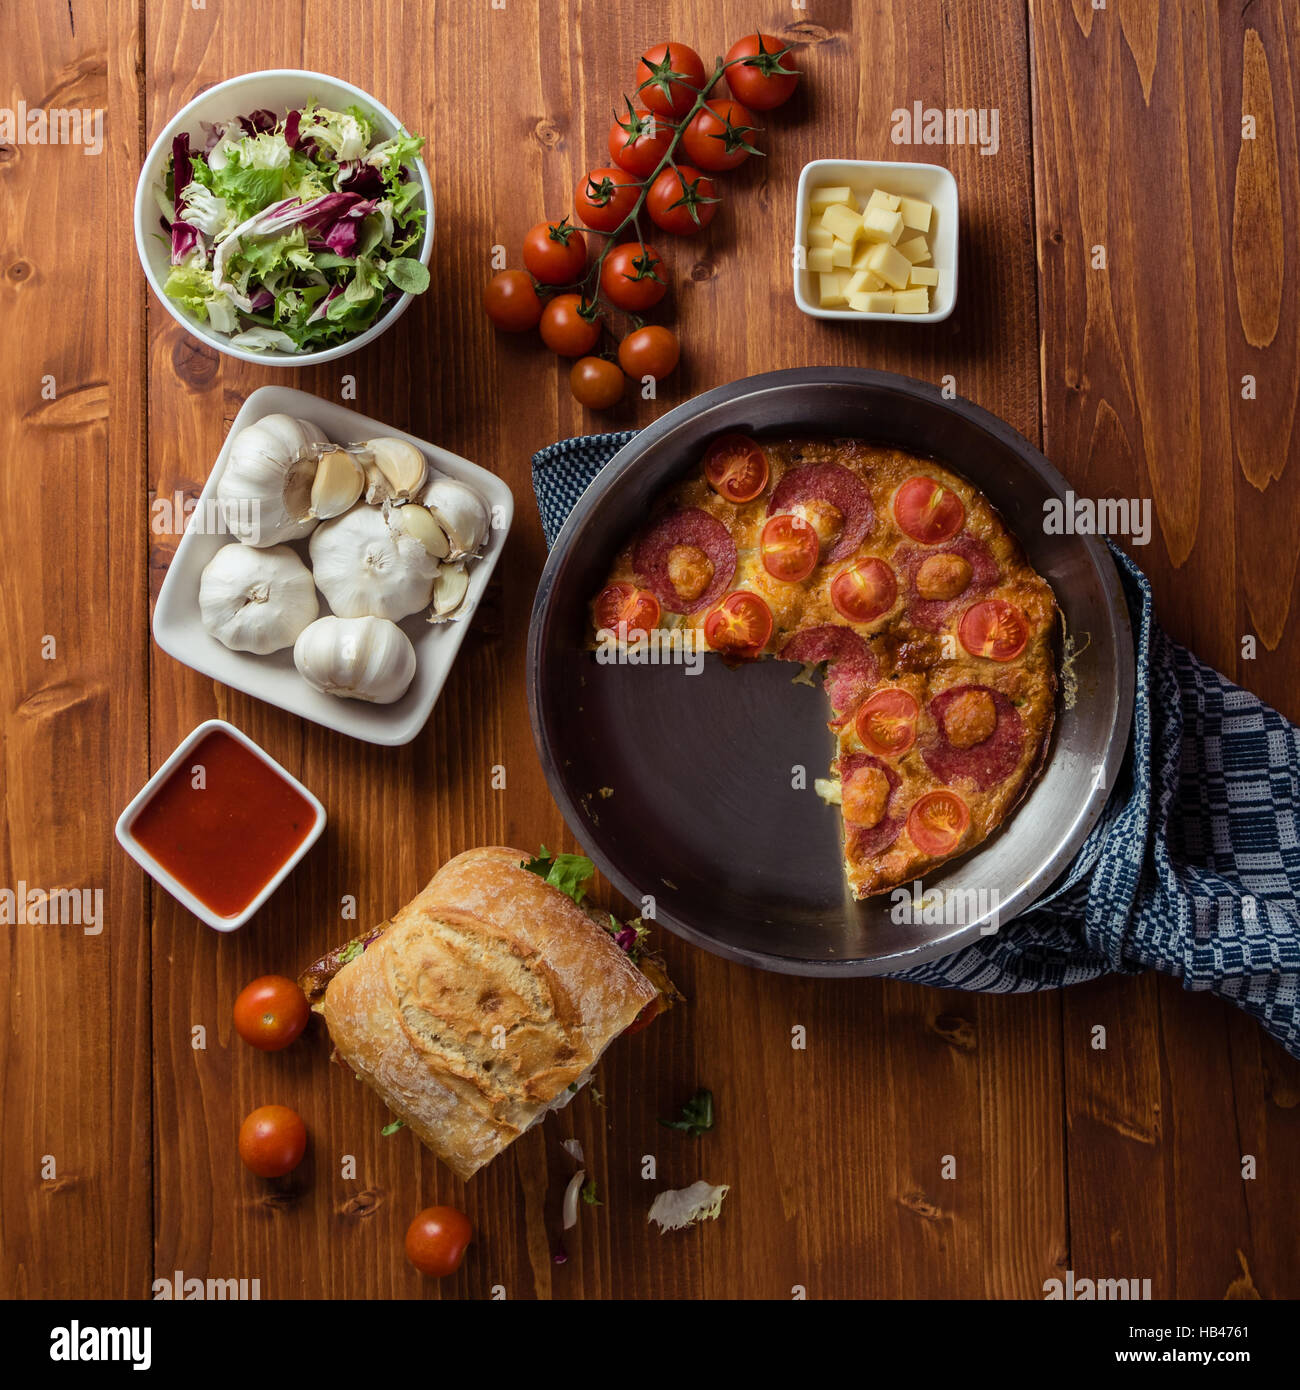 breakfast table with frittata - Stock Image